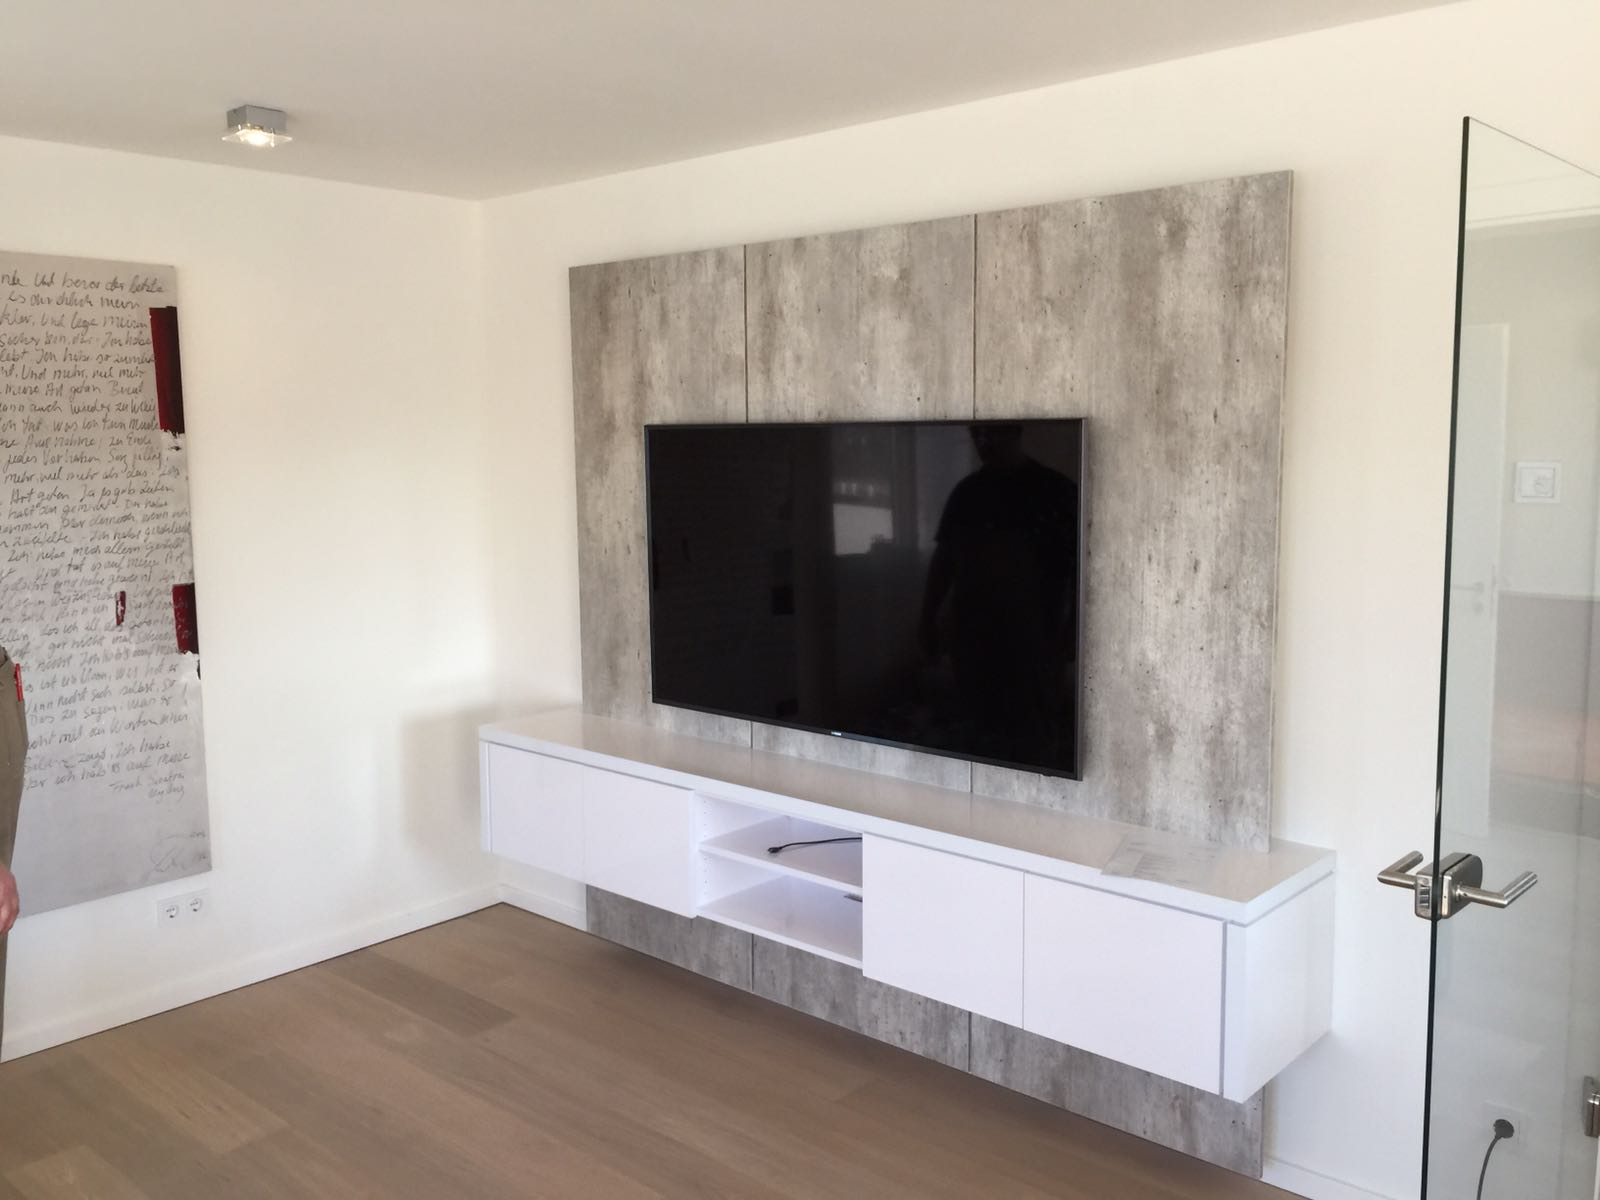 Tv Wand Xxl Tv Wand Xxl In Betonoptik Für Kunden In Solingen Tv Wall